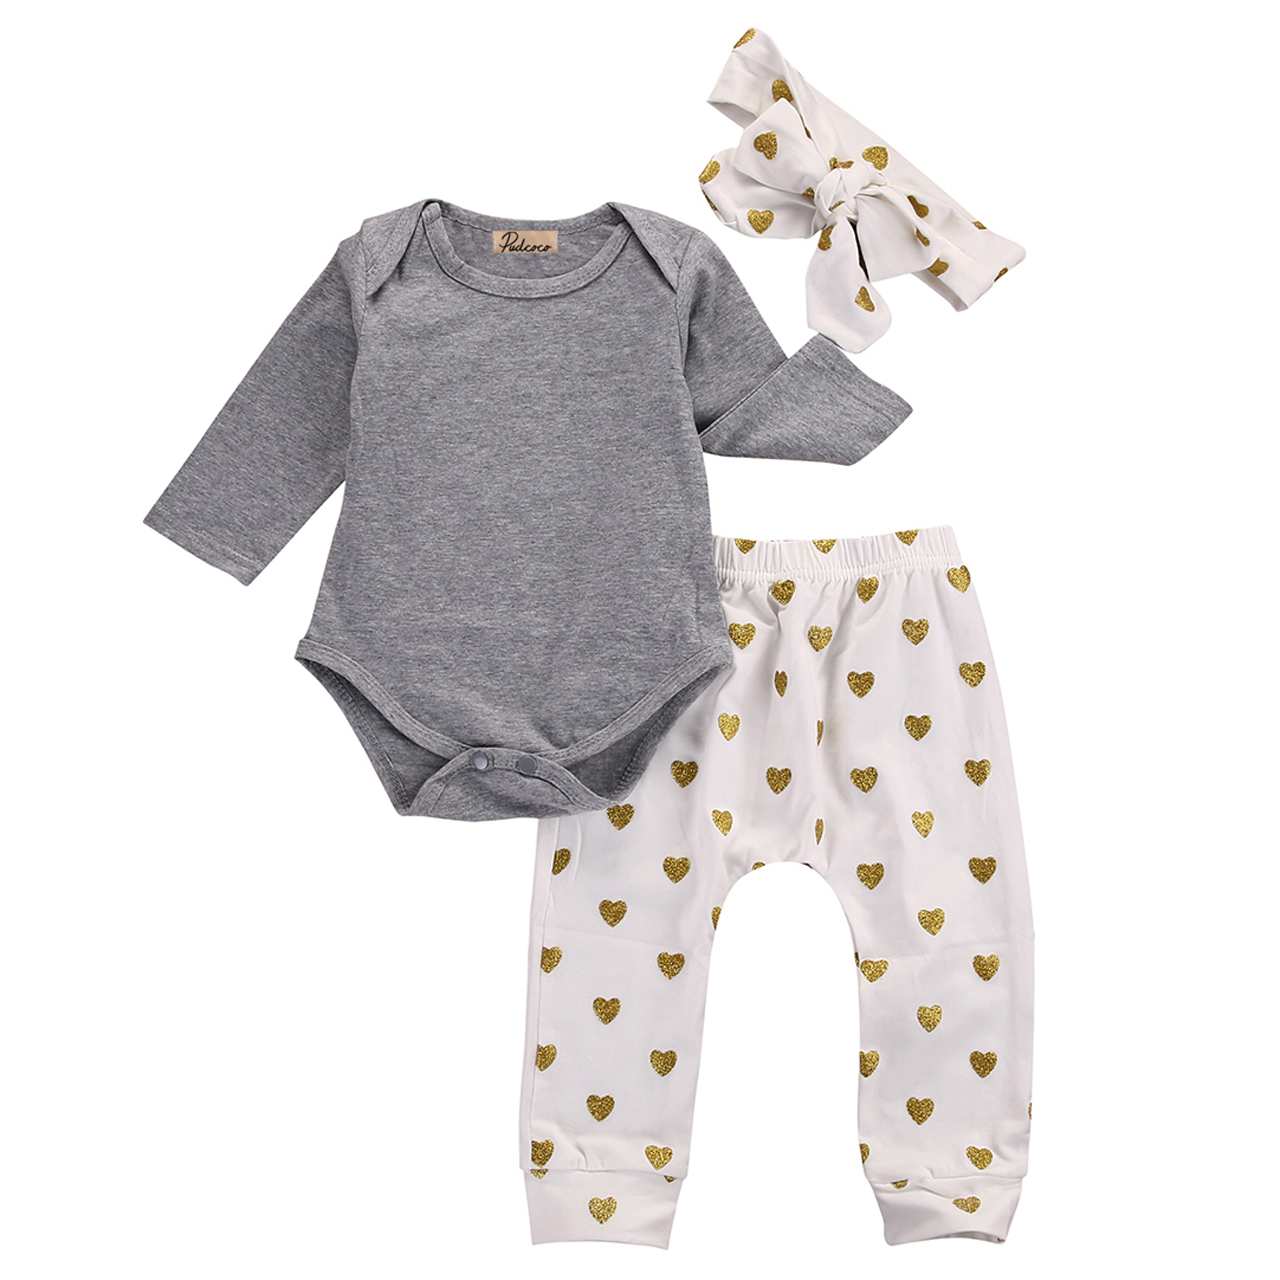 Pudcoco HOT Sale Baby Sequin Suit Girl Jumpsuit 3pcs Infand Baby Girls Solid Gray Rompers Heart Printed Pants Leggings Outfits